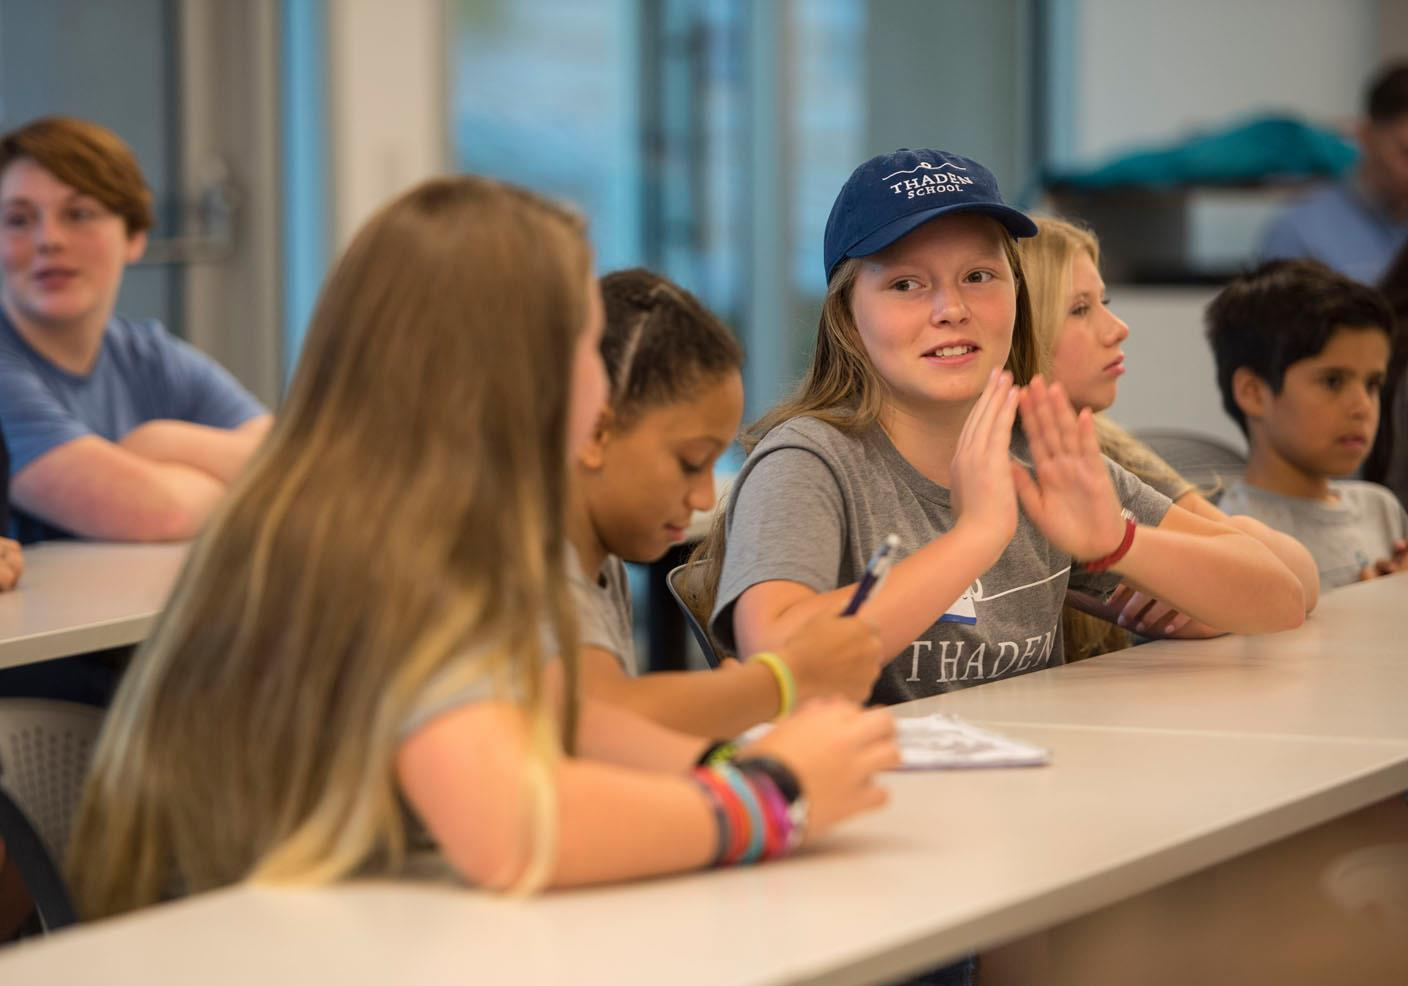 Thaden School to occupy Crystal Bridges for first month